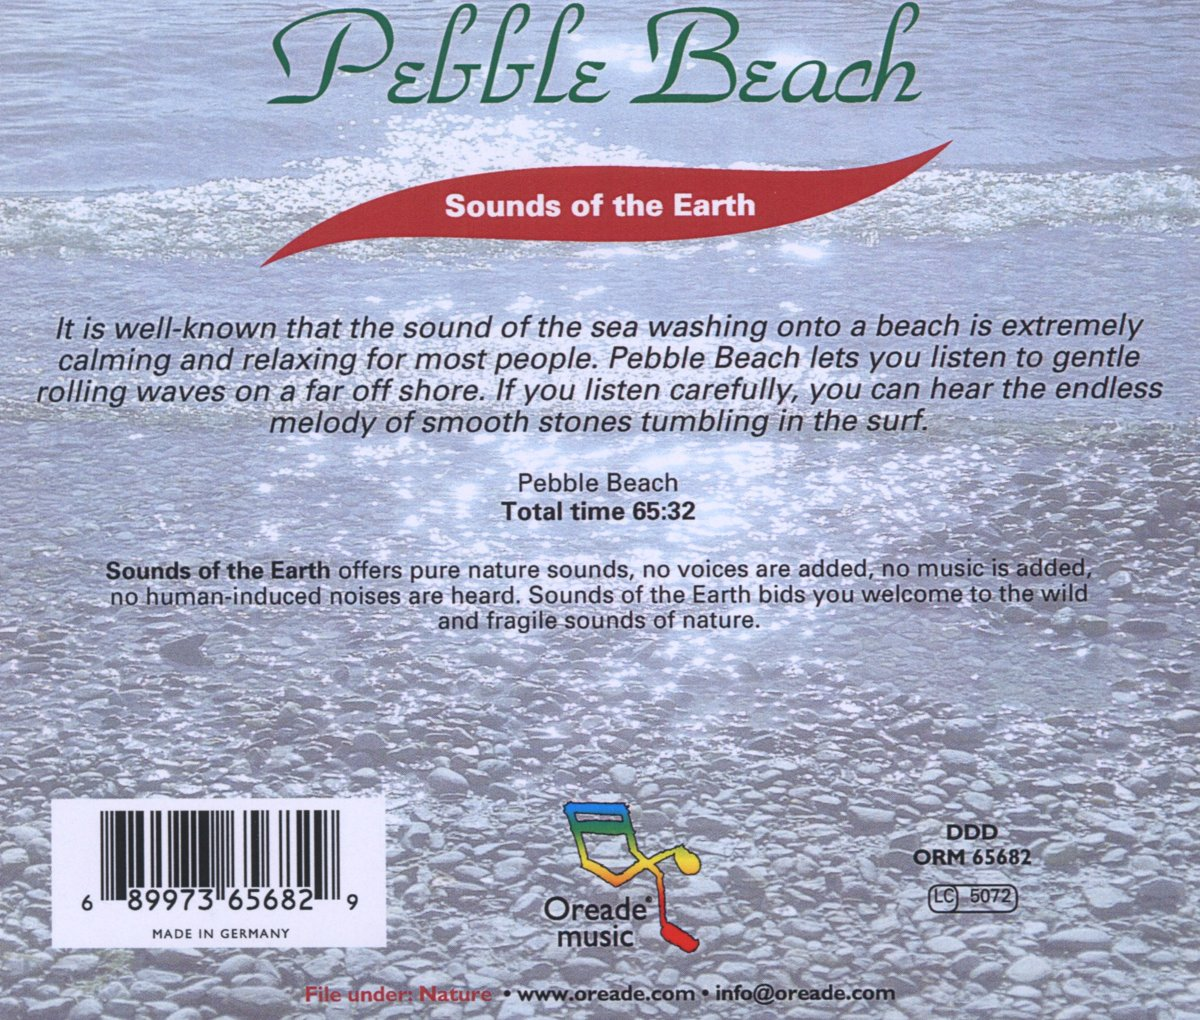 bol com | Pebble Beach, Sounds of the Earth | CD (album